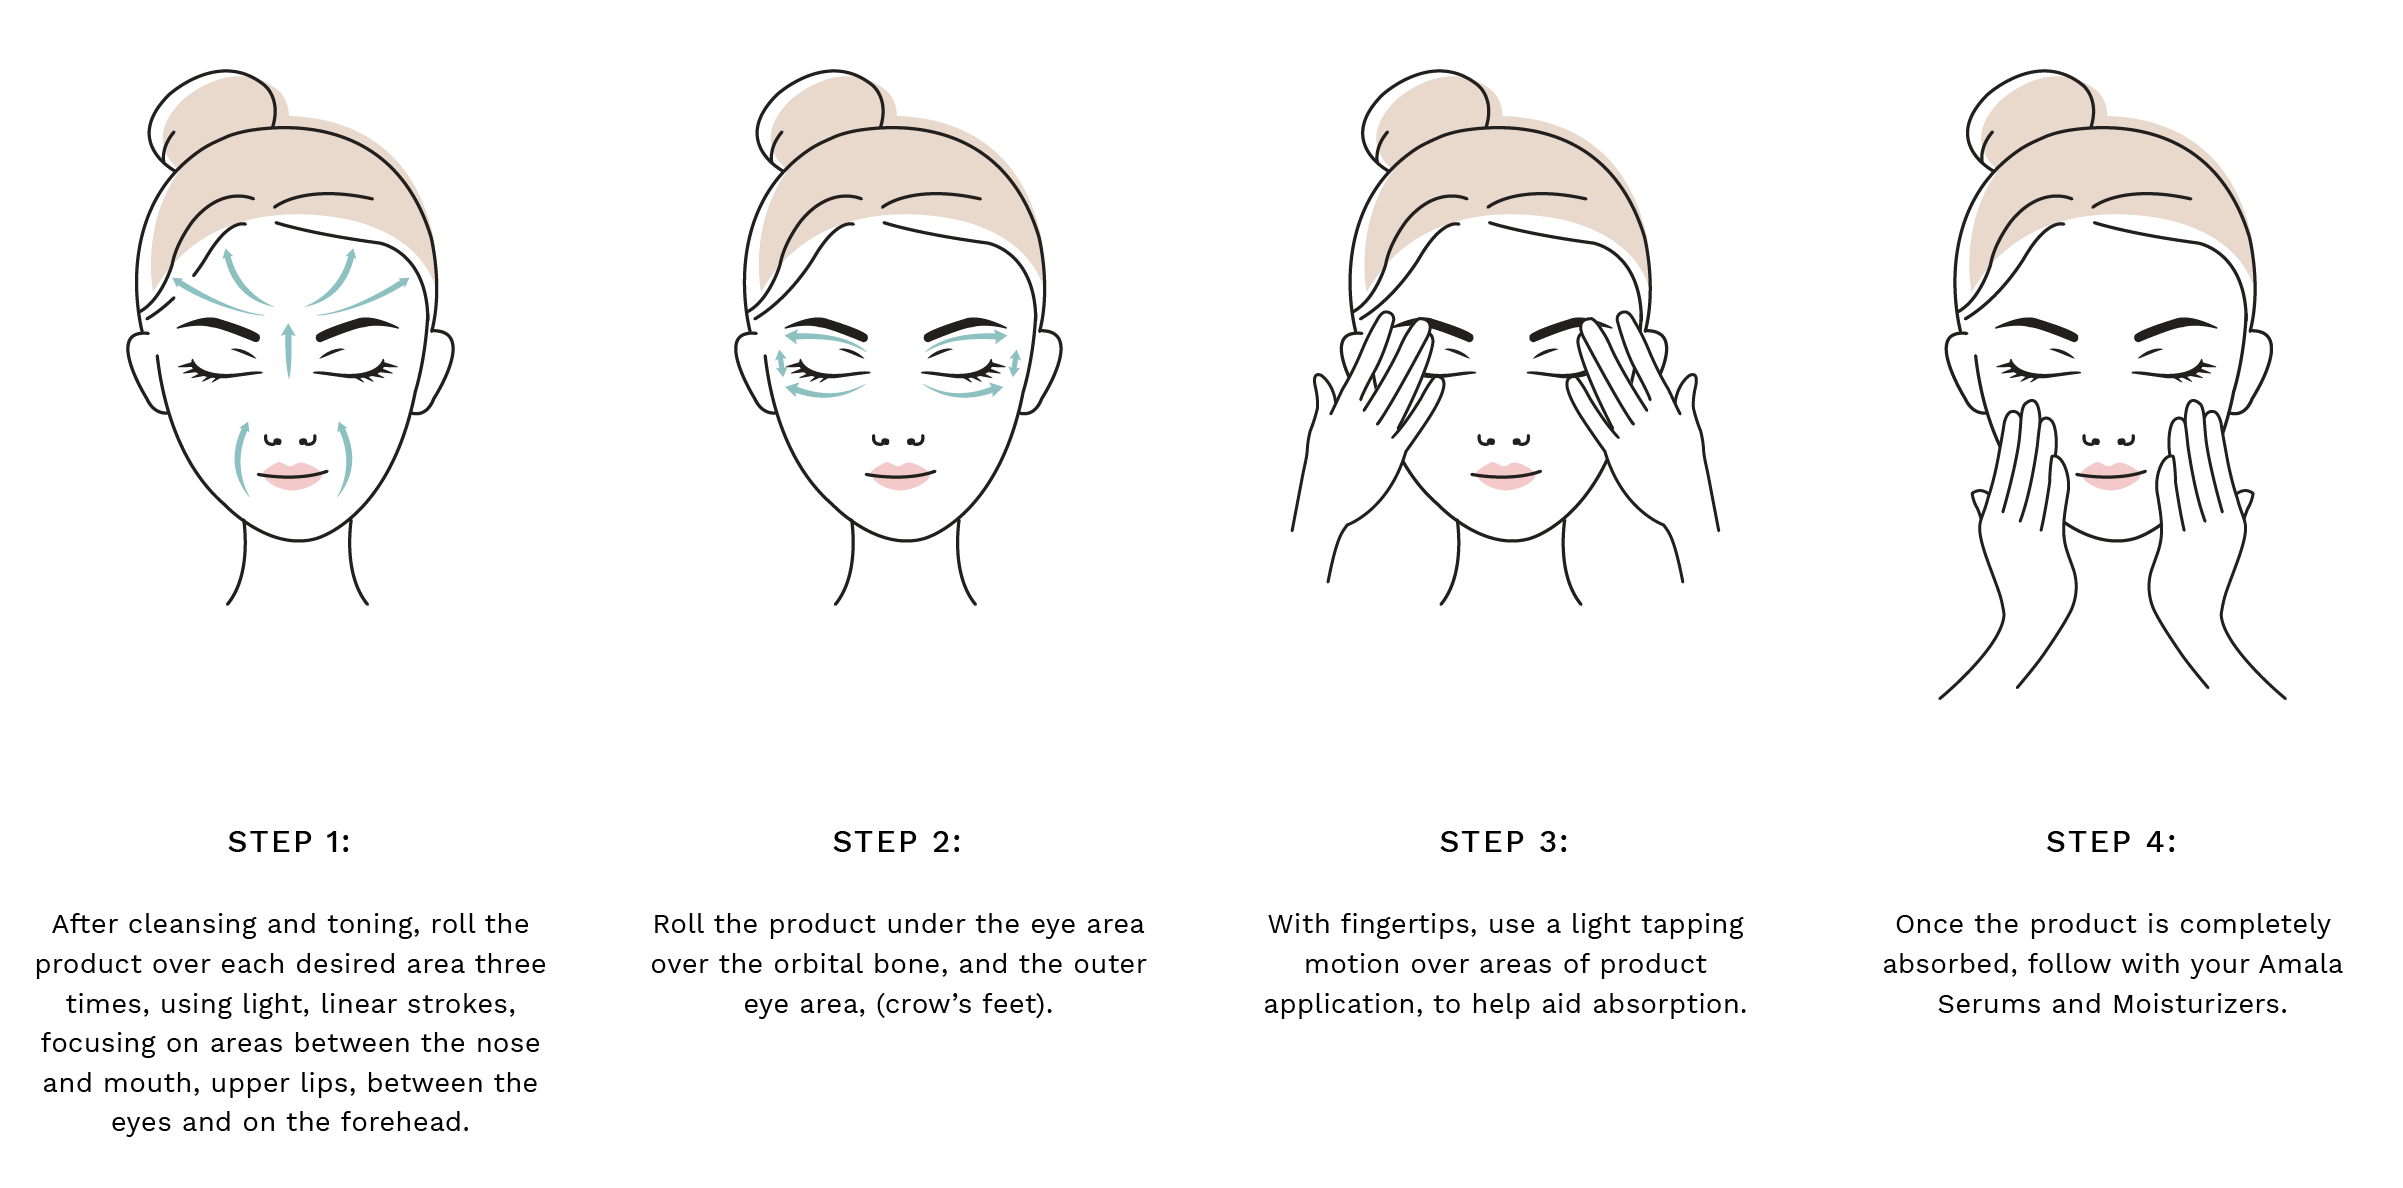 Step 1: After cleansing and toning, roll the product over each desired area three times, using light, linear strokes, focusing on areas between the nose and mouth, upper lips, between the eyes and on the forehead. Step 2: Roll the product under the eye area over the orbital bone, and the outer eye area, (crow's feet). Step 3: With fingertips, use a light tapping motion over areas of product application, to help aid absorption. Step 4: Once the product is completely absorbed, follow with your Amala Serums and Moisturizers.